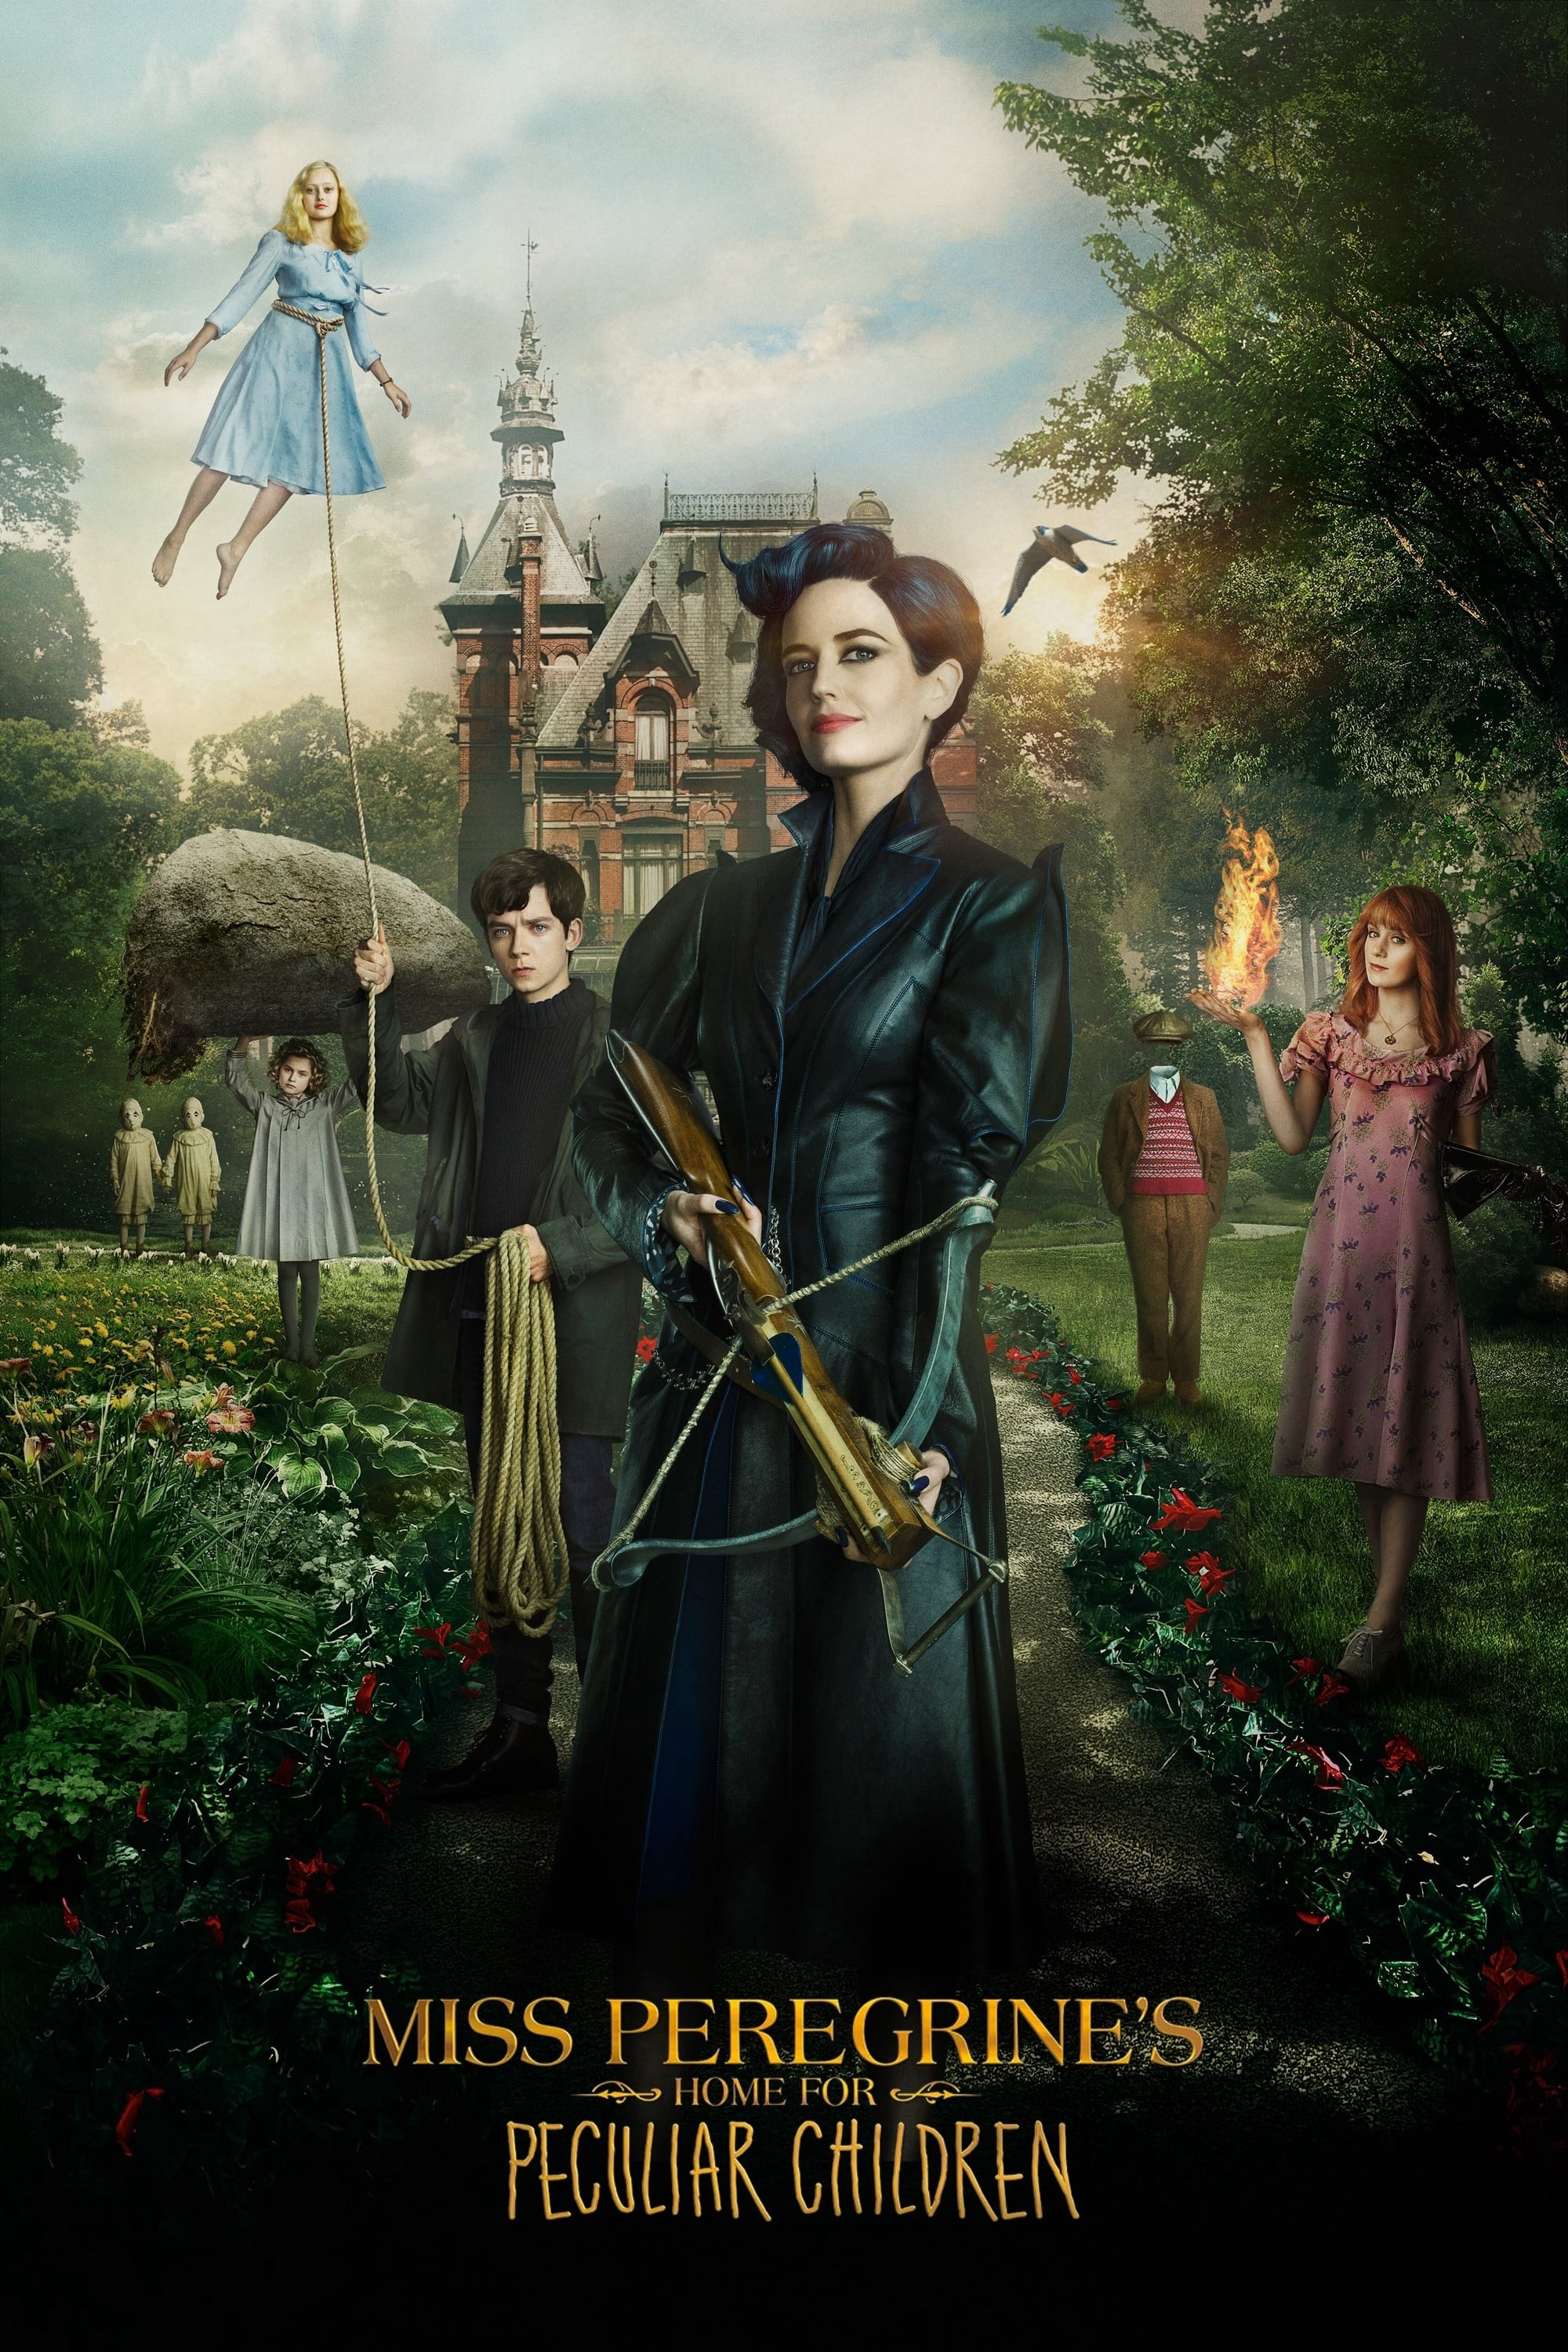 Home for Peculiar Children (2016) — Watch English Movies